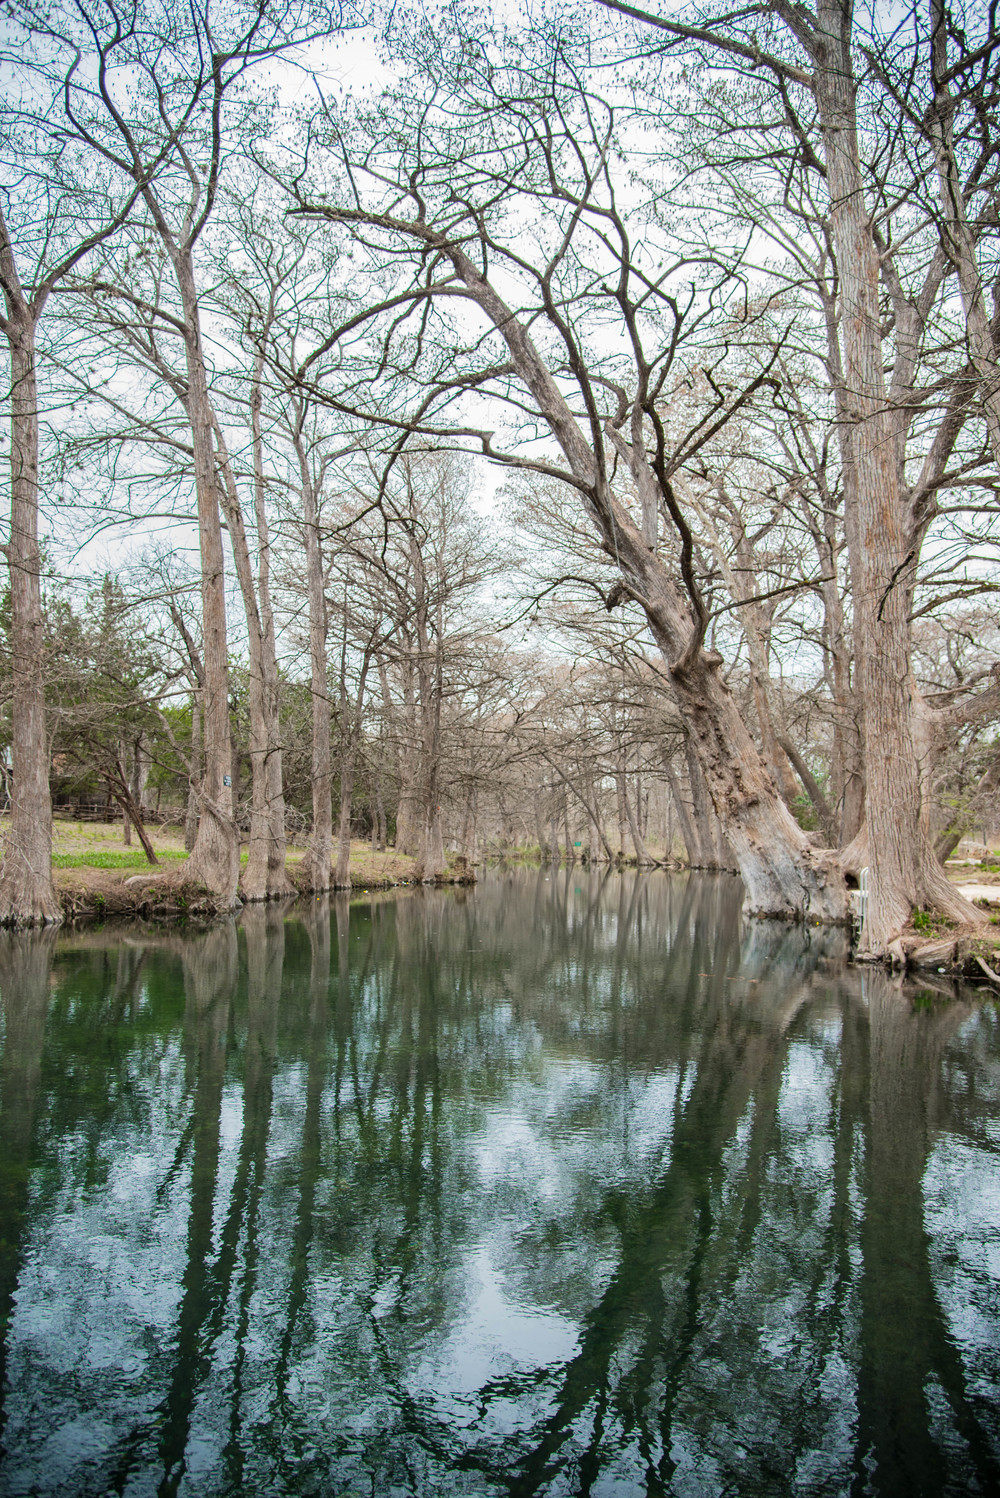 The Blue Hole  Wimberely, TX